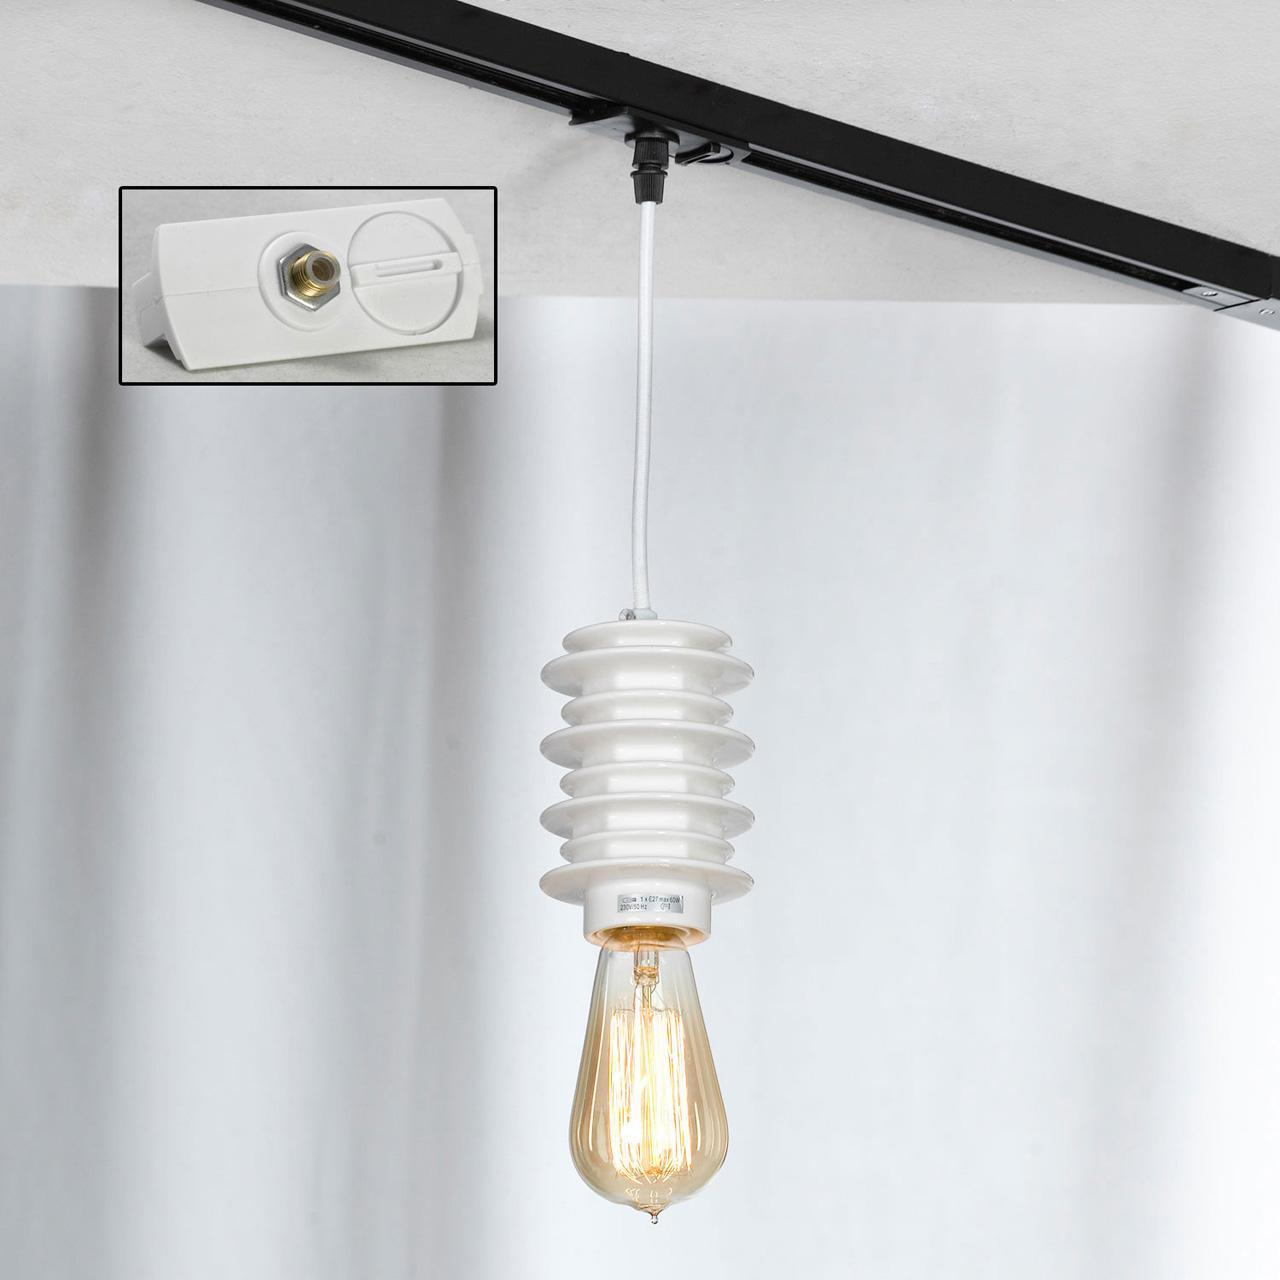 Трековый светильник однофазный Lussole LOFT Track Lights LSP-9921-TAW edison bulb loft style vintage pendant industrial light lamp with 3 lights for dining room